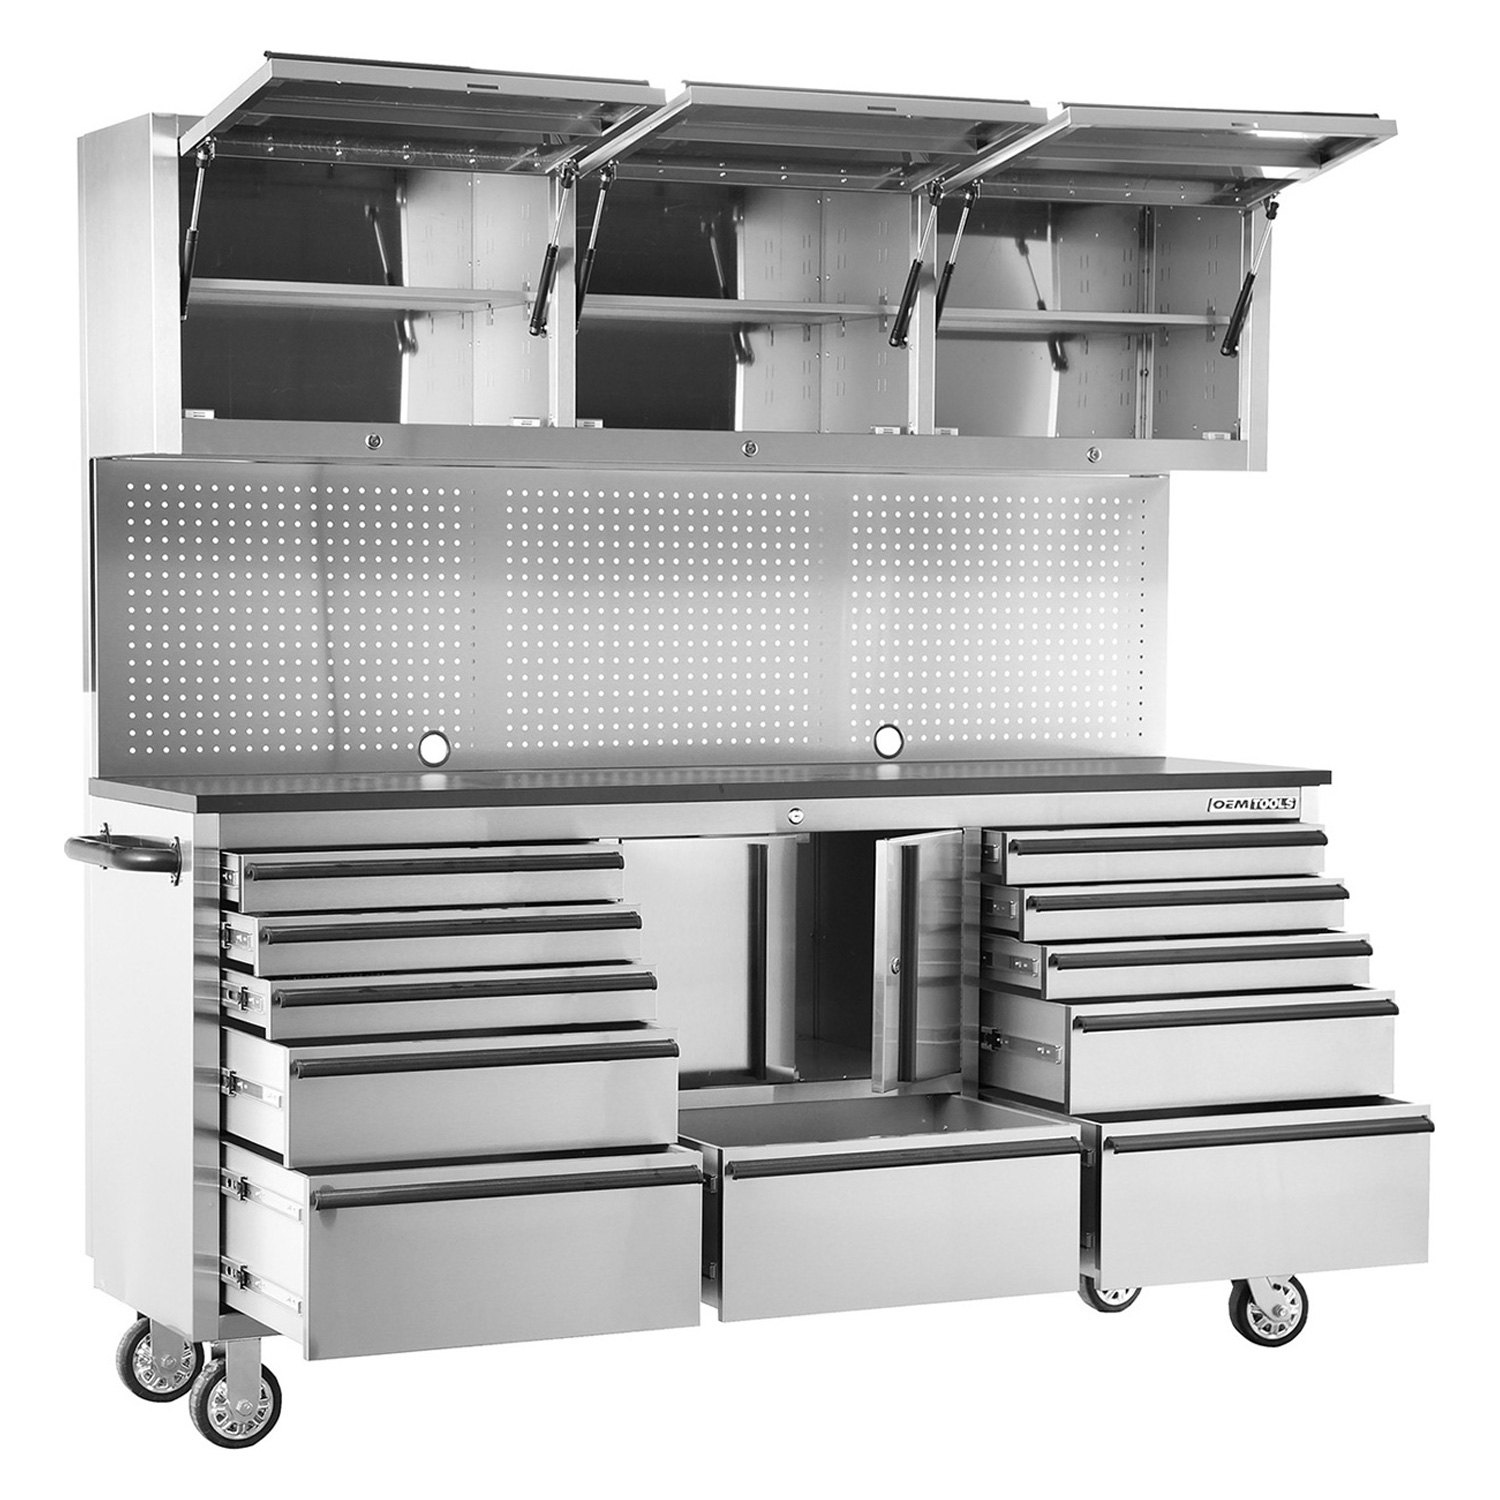 Oem Tools 174 24615 Stainless Steel 72 Quot 11 Drawer Cabinet